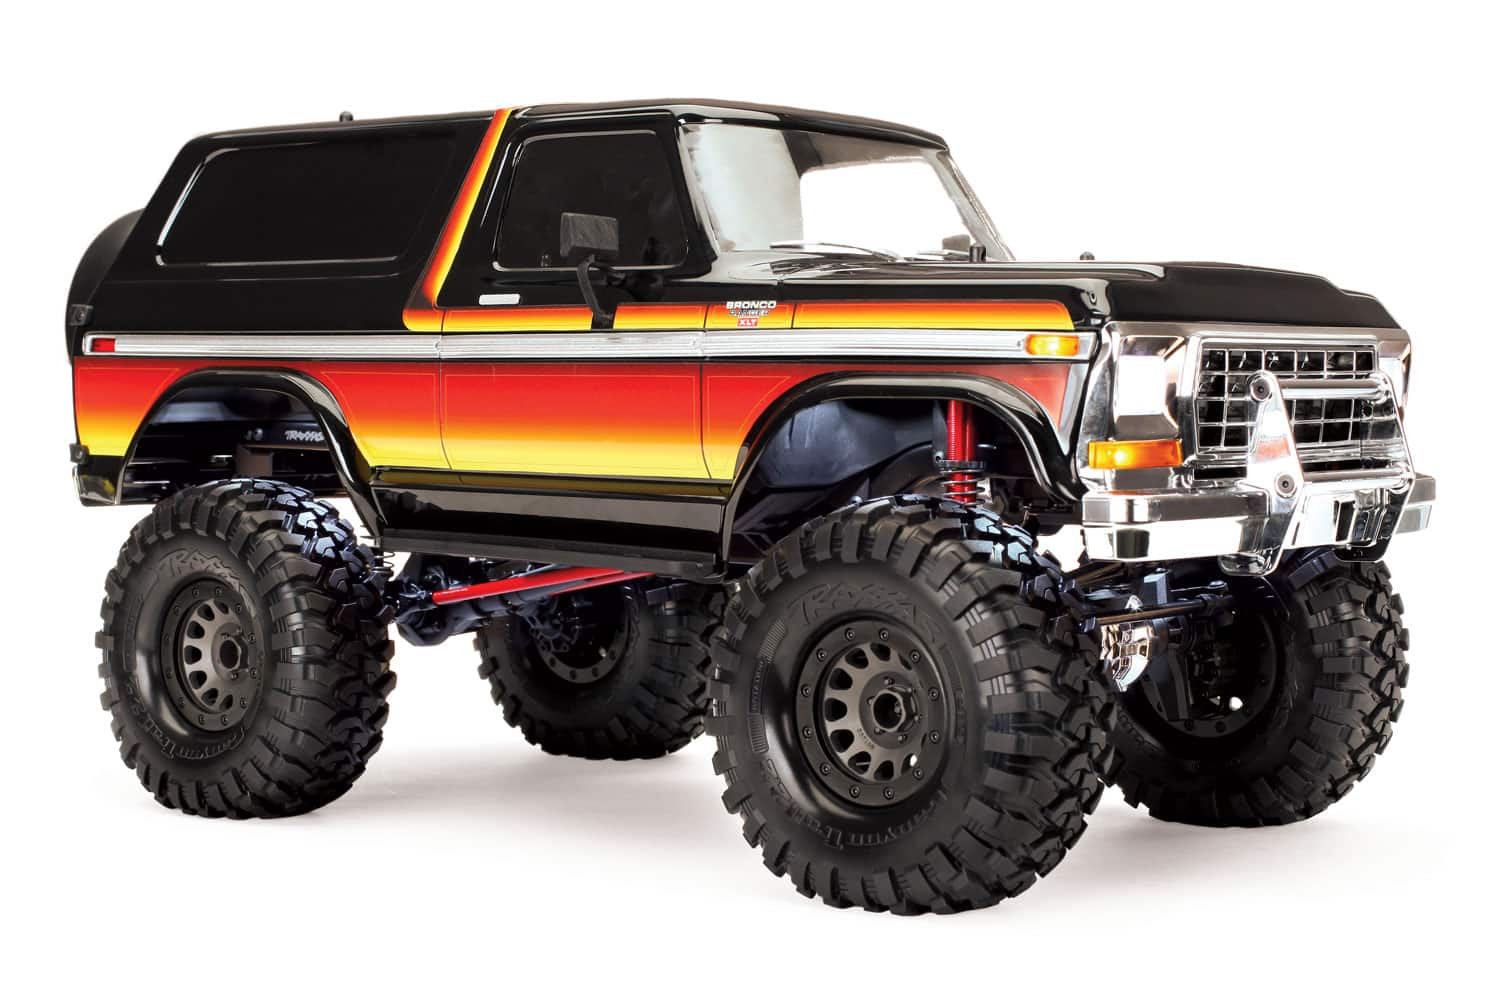 Long Arm Lift Kits for the Traxxas TRX-4